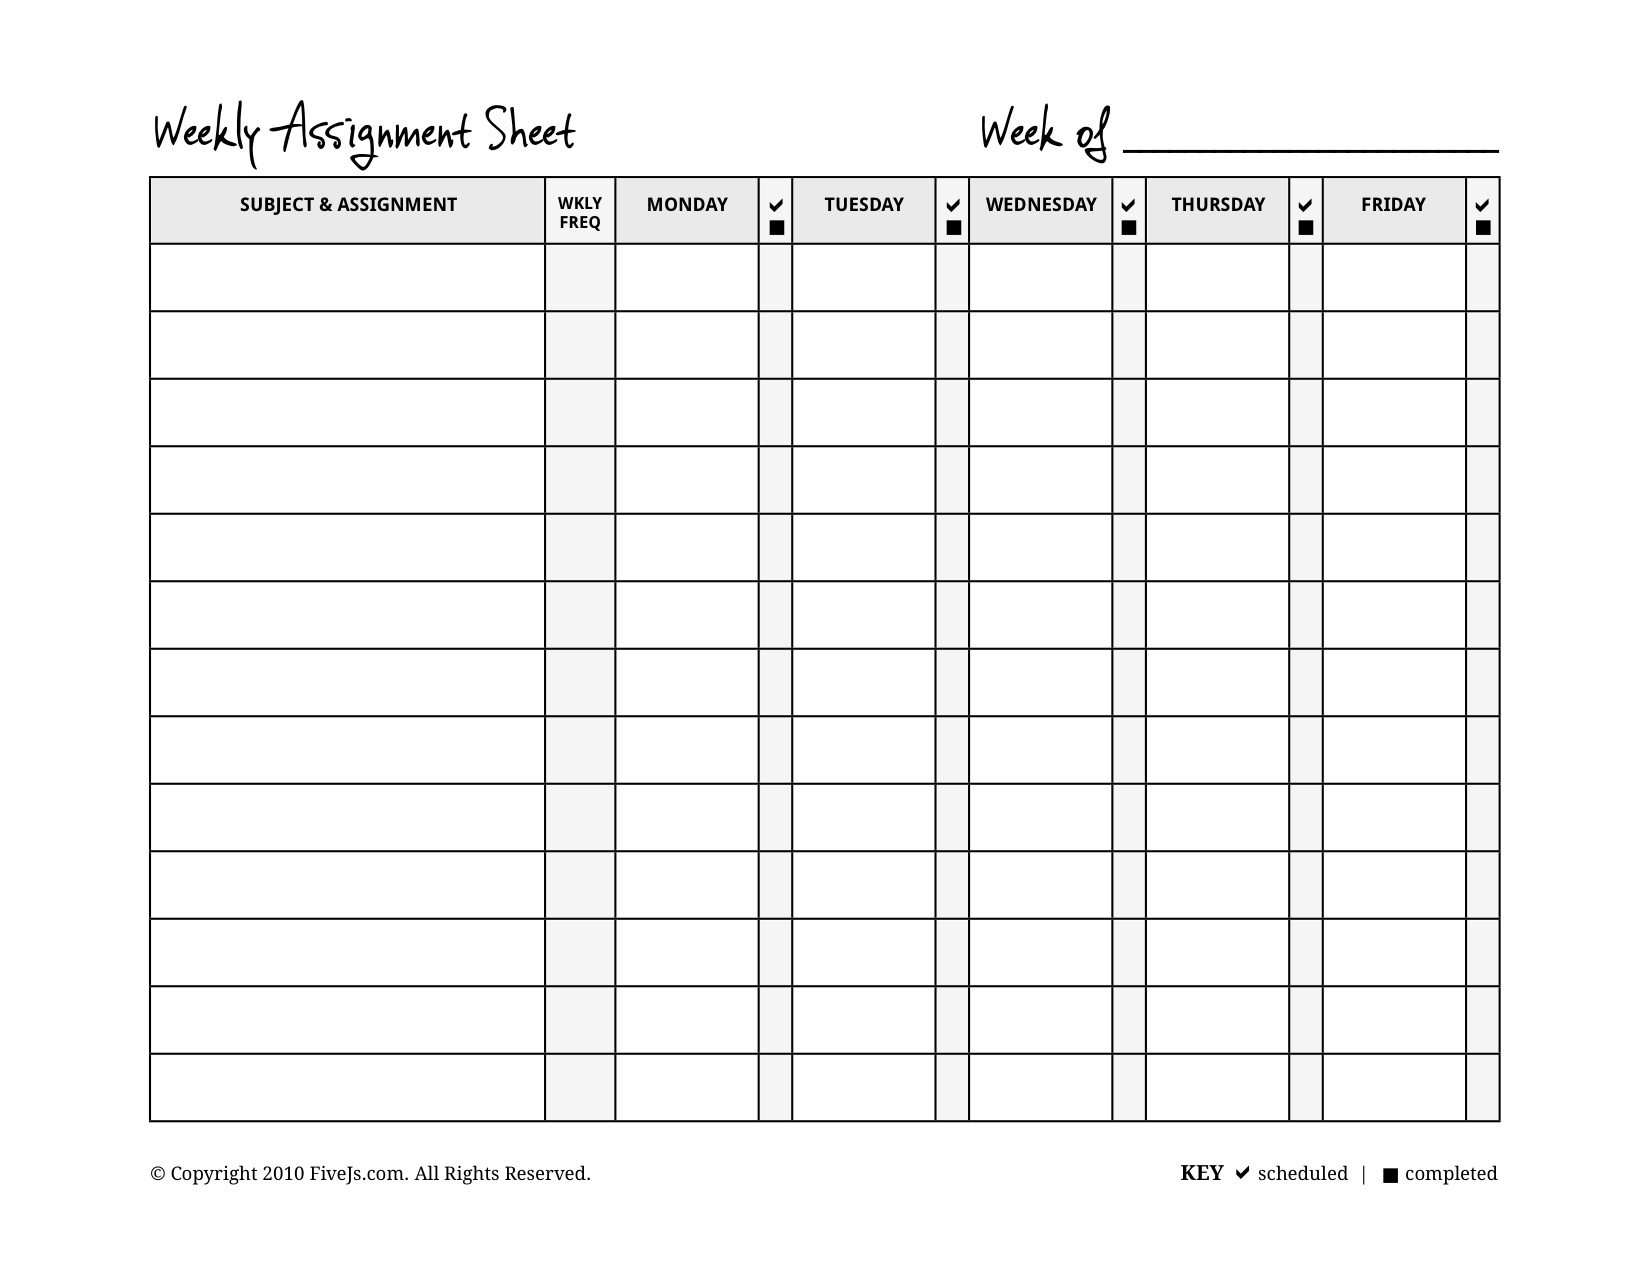 Homeschool weekly assignment planner for Homeschool checklist template